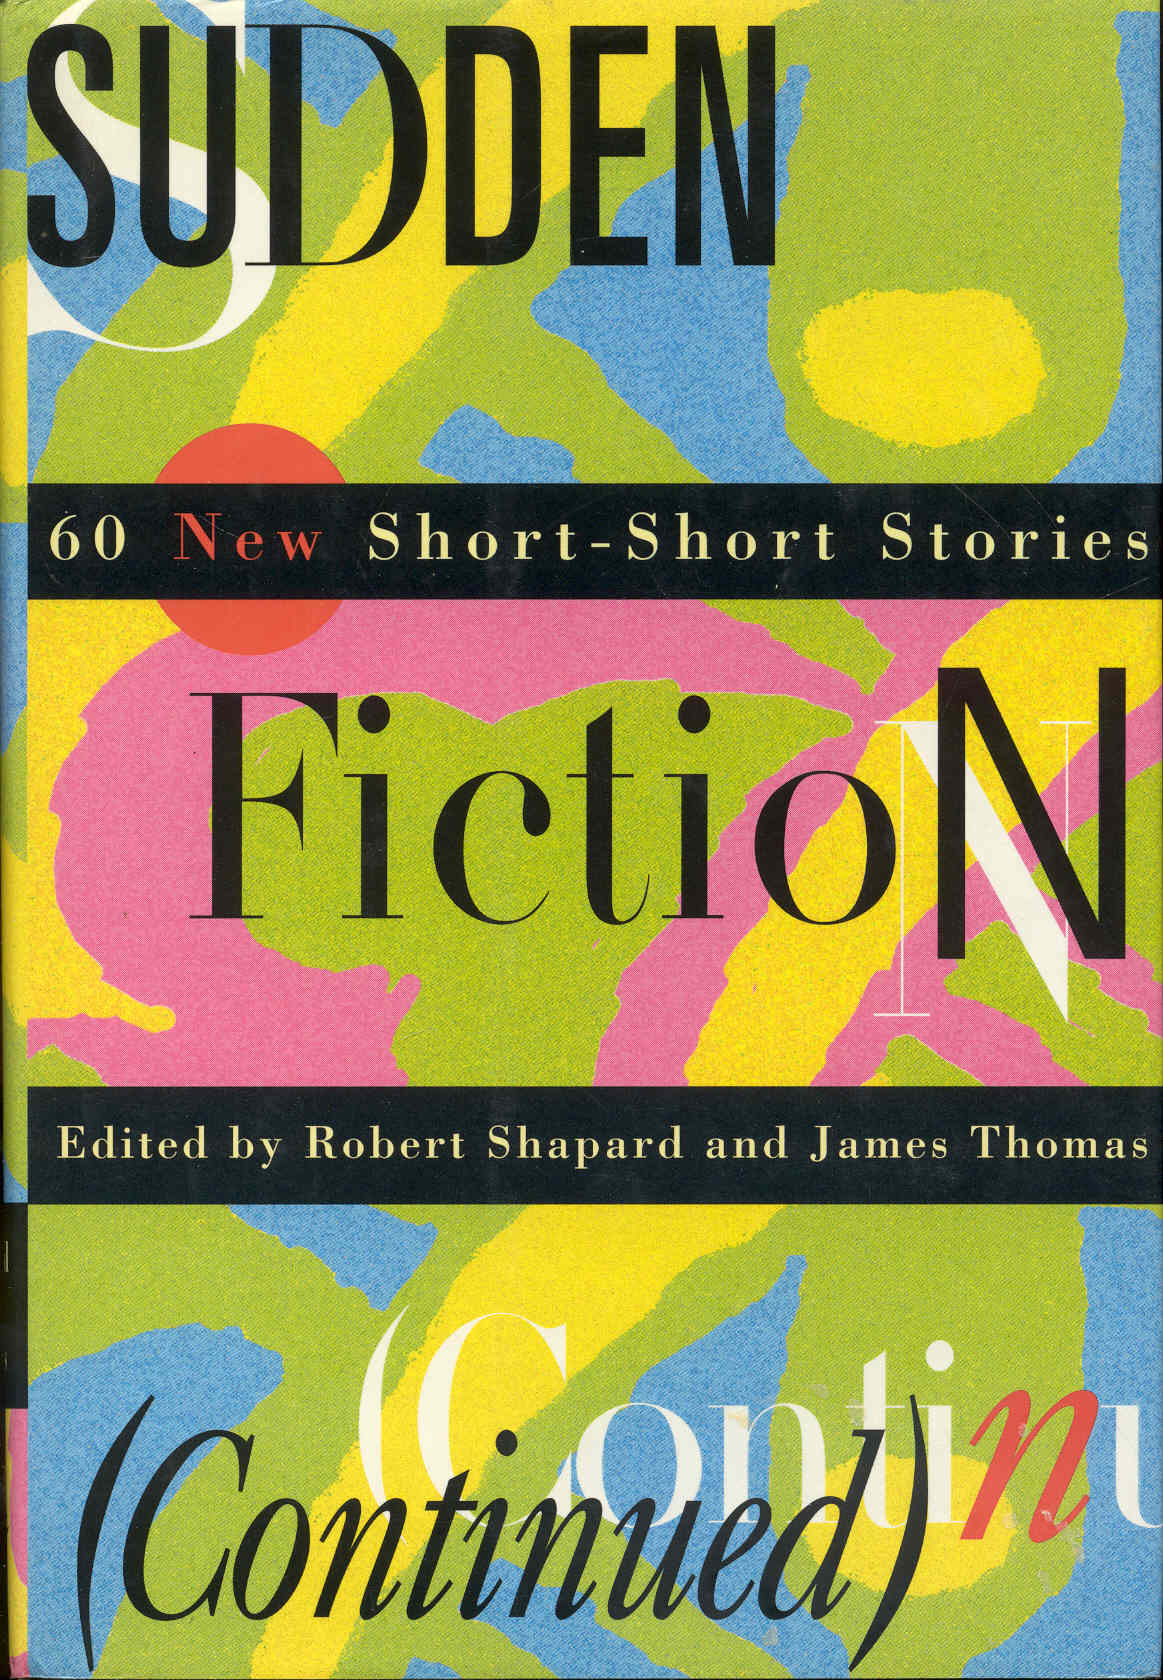 Image for Sudden Fiction (Continued): 60 New Short-Short Stories